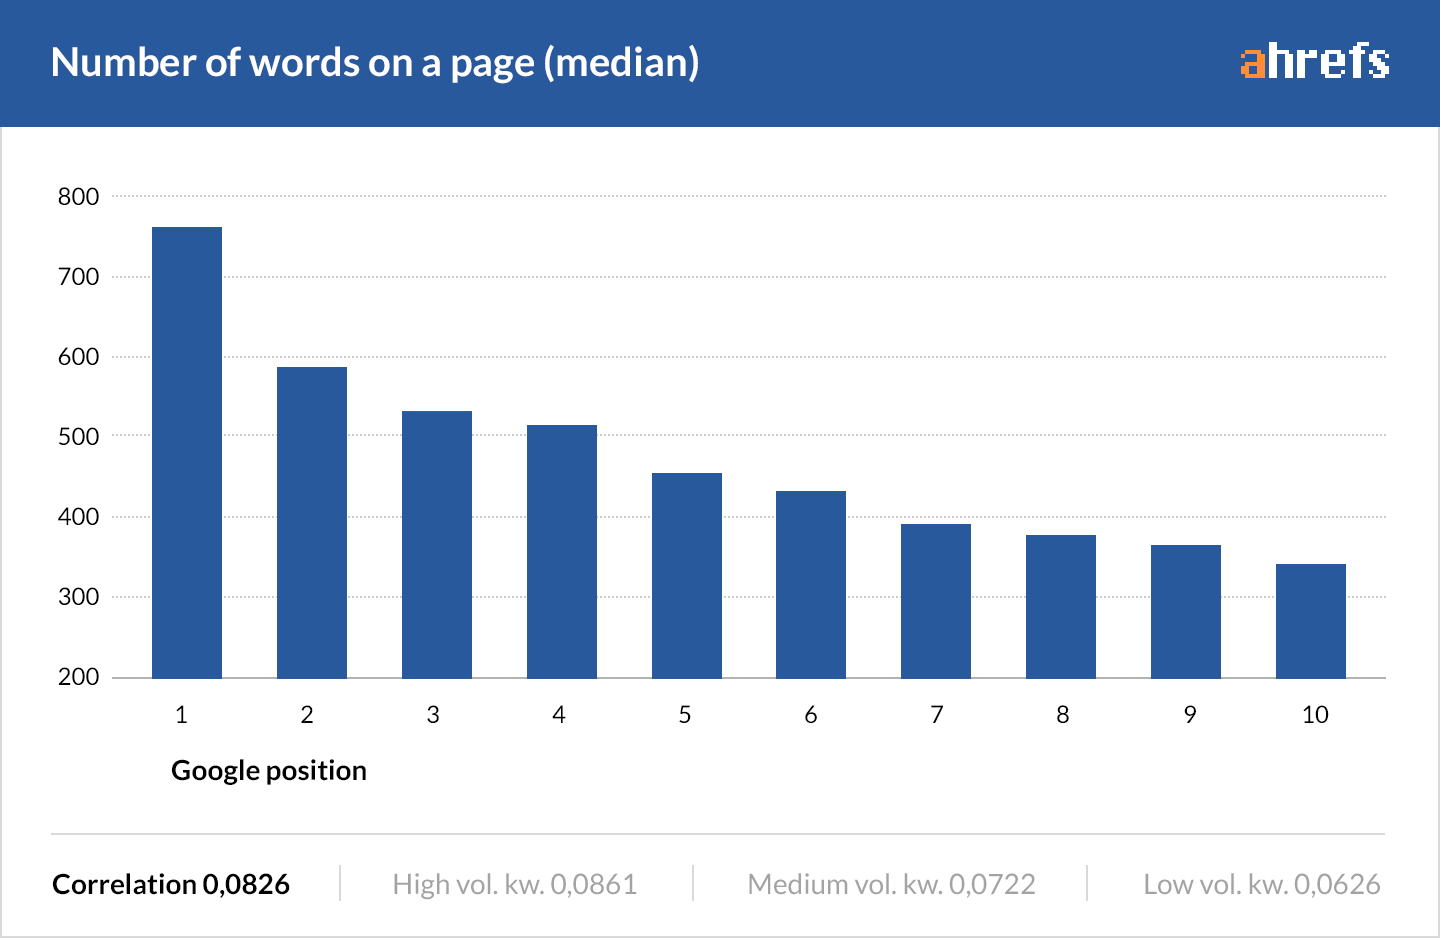 Ahrefs' report on ranking according to word count.